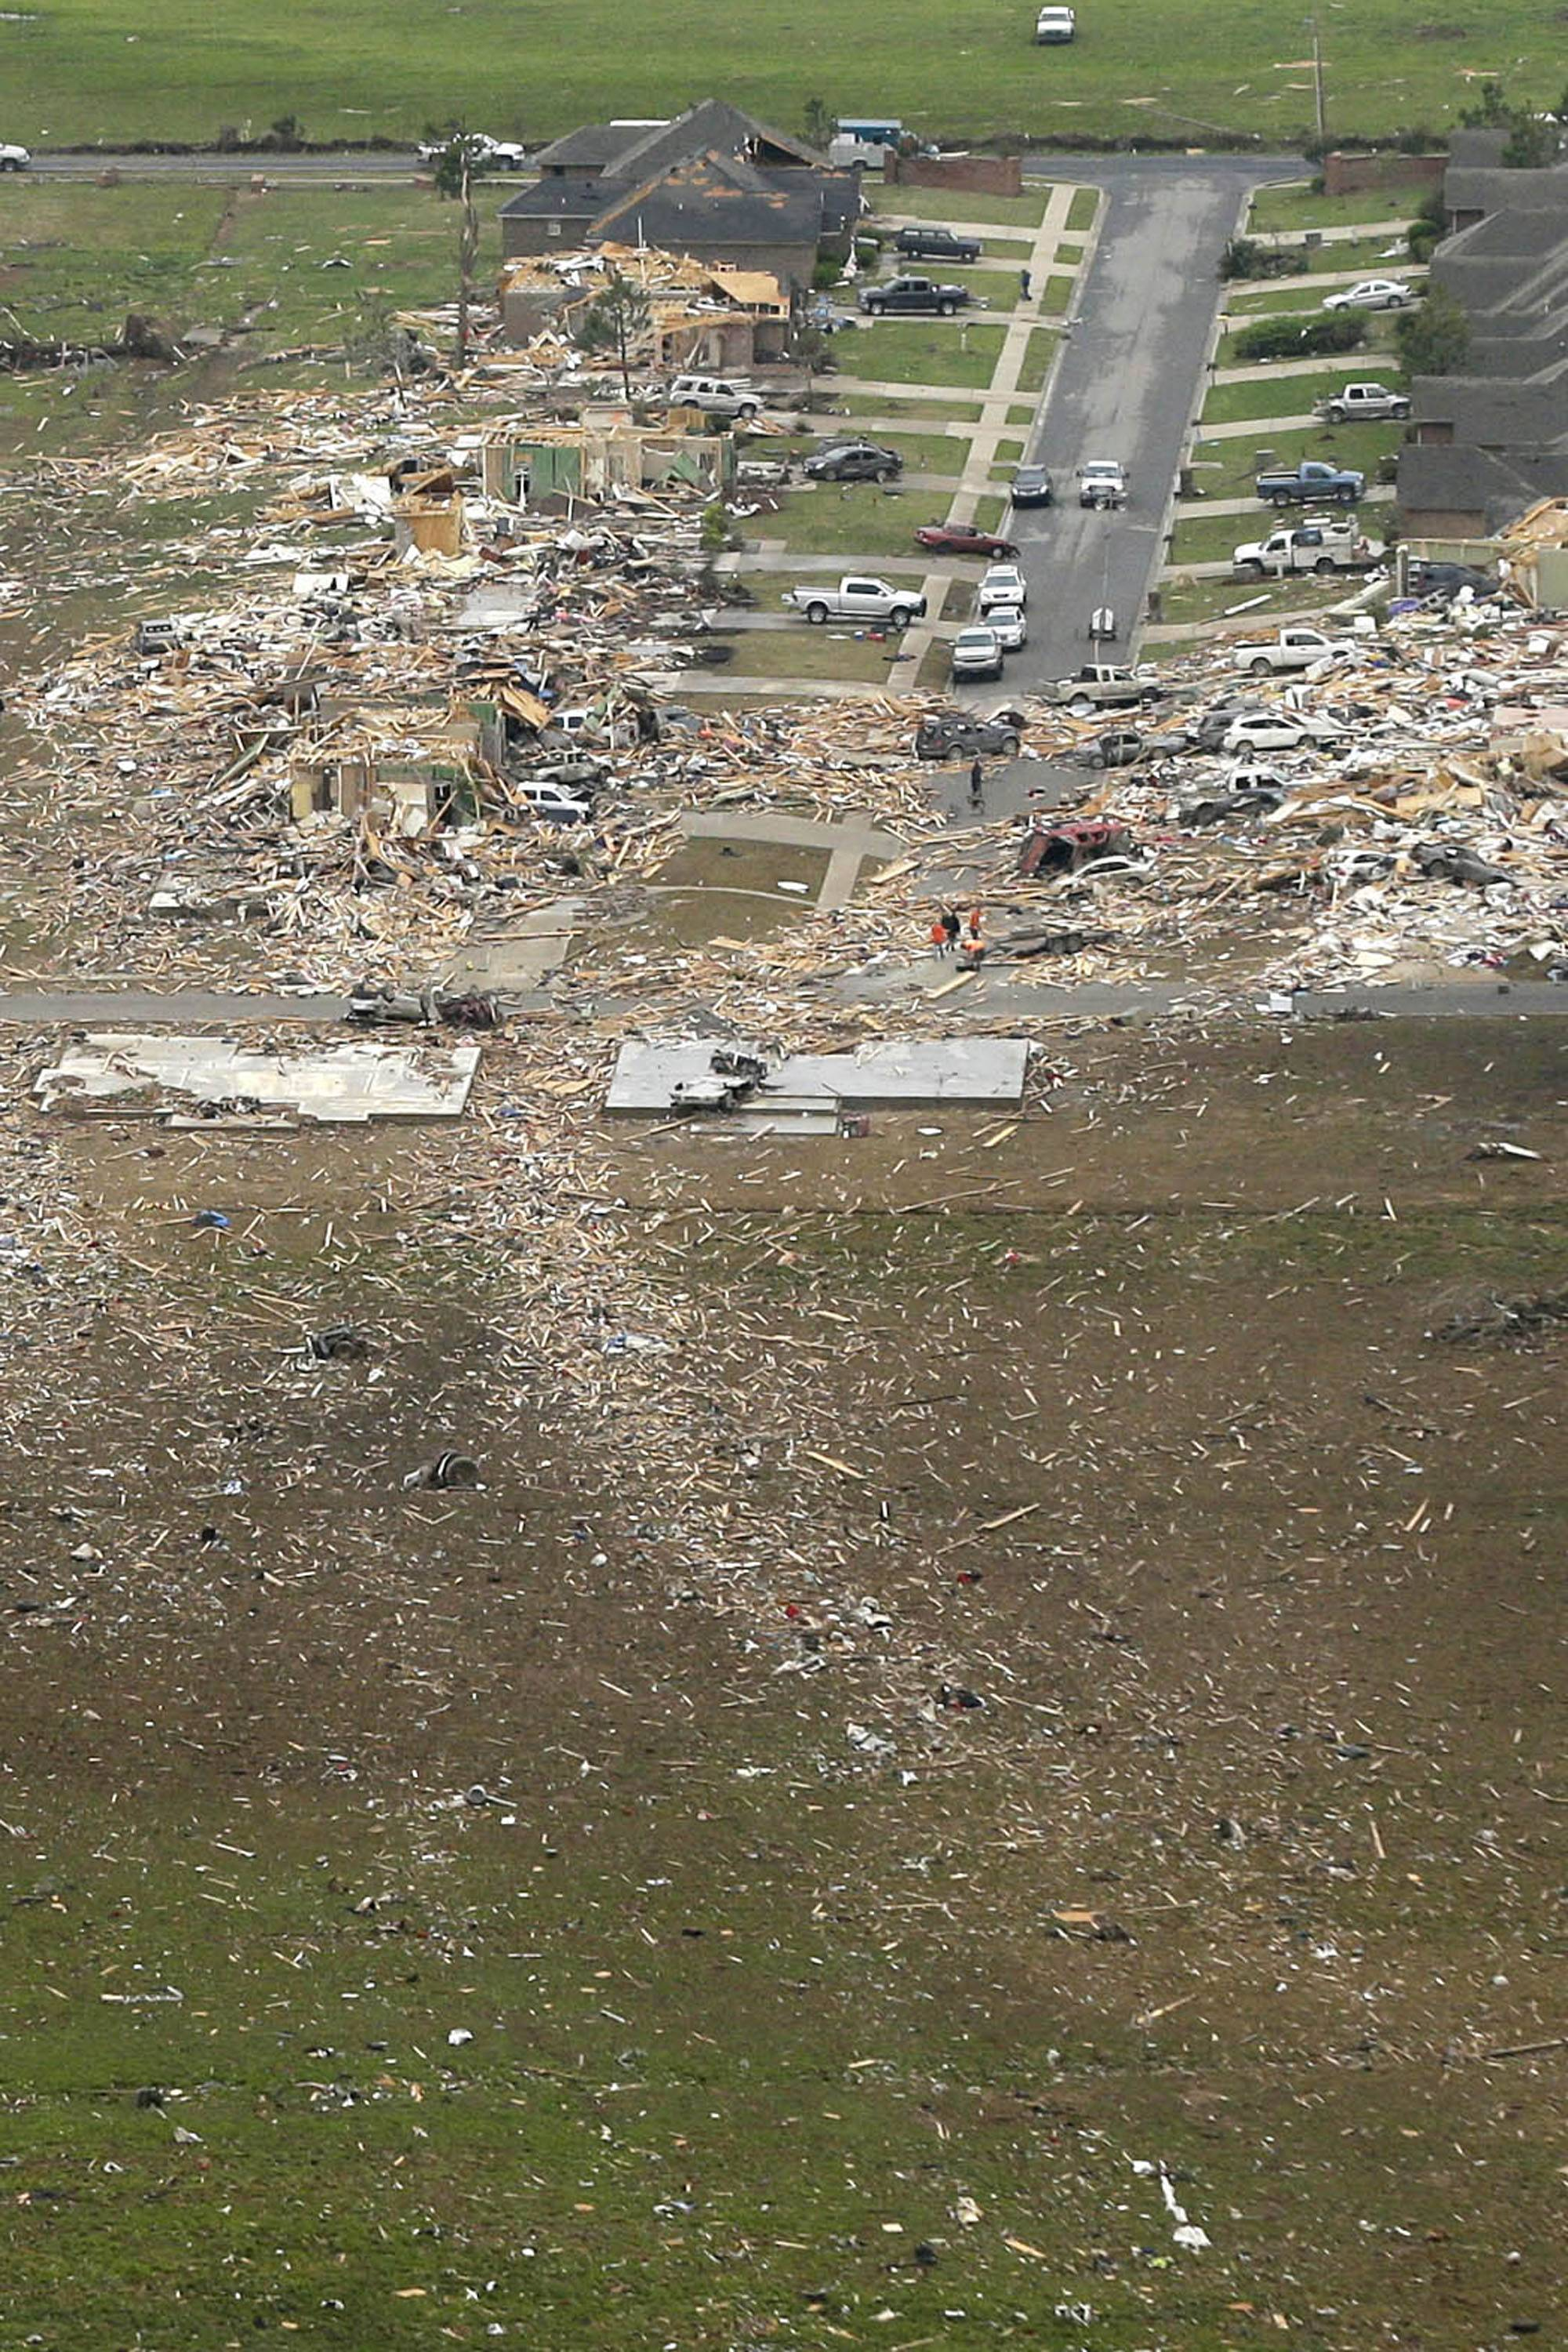 A trail of debris, bottom, leads along the path of a tornado-devastated neighborhood in Vilonia, Ark., Monday, April 28, 2014, after a tornado struck the town late Sunday. The most powerful twister this year carved an 80-mile path of destruction through suburbs north of the state capital of Little Rock, killing at least 16 people.